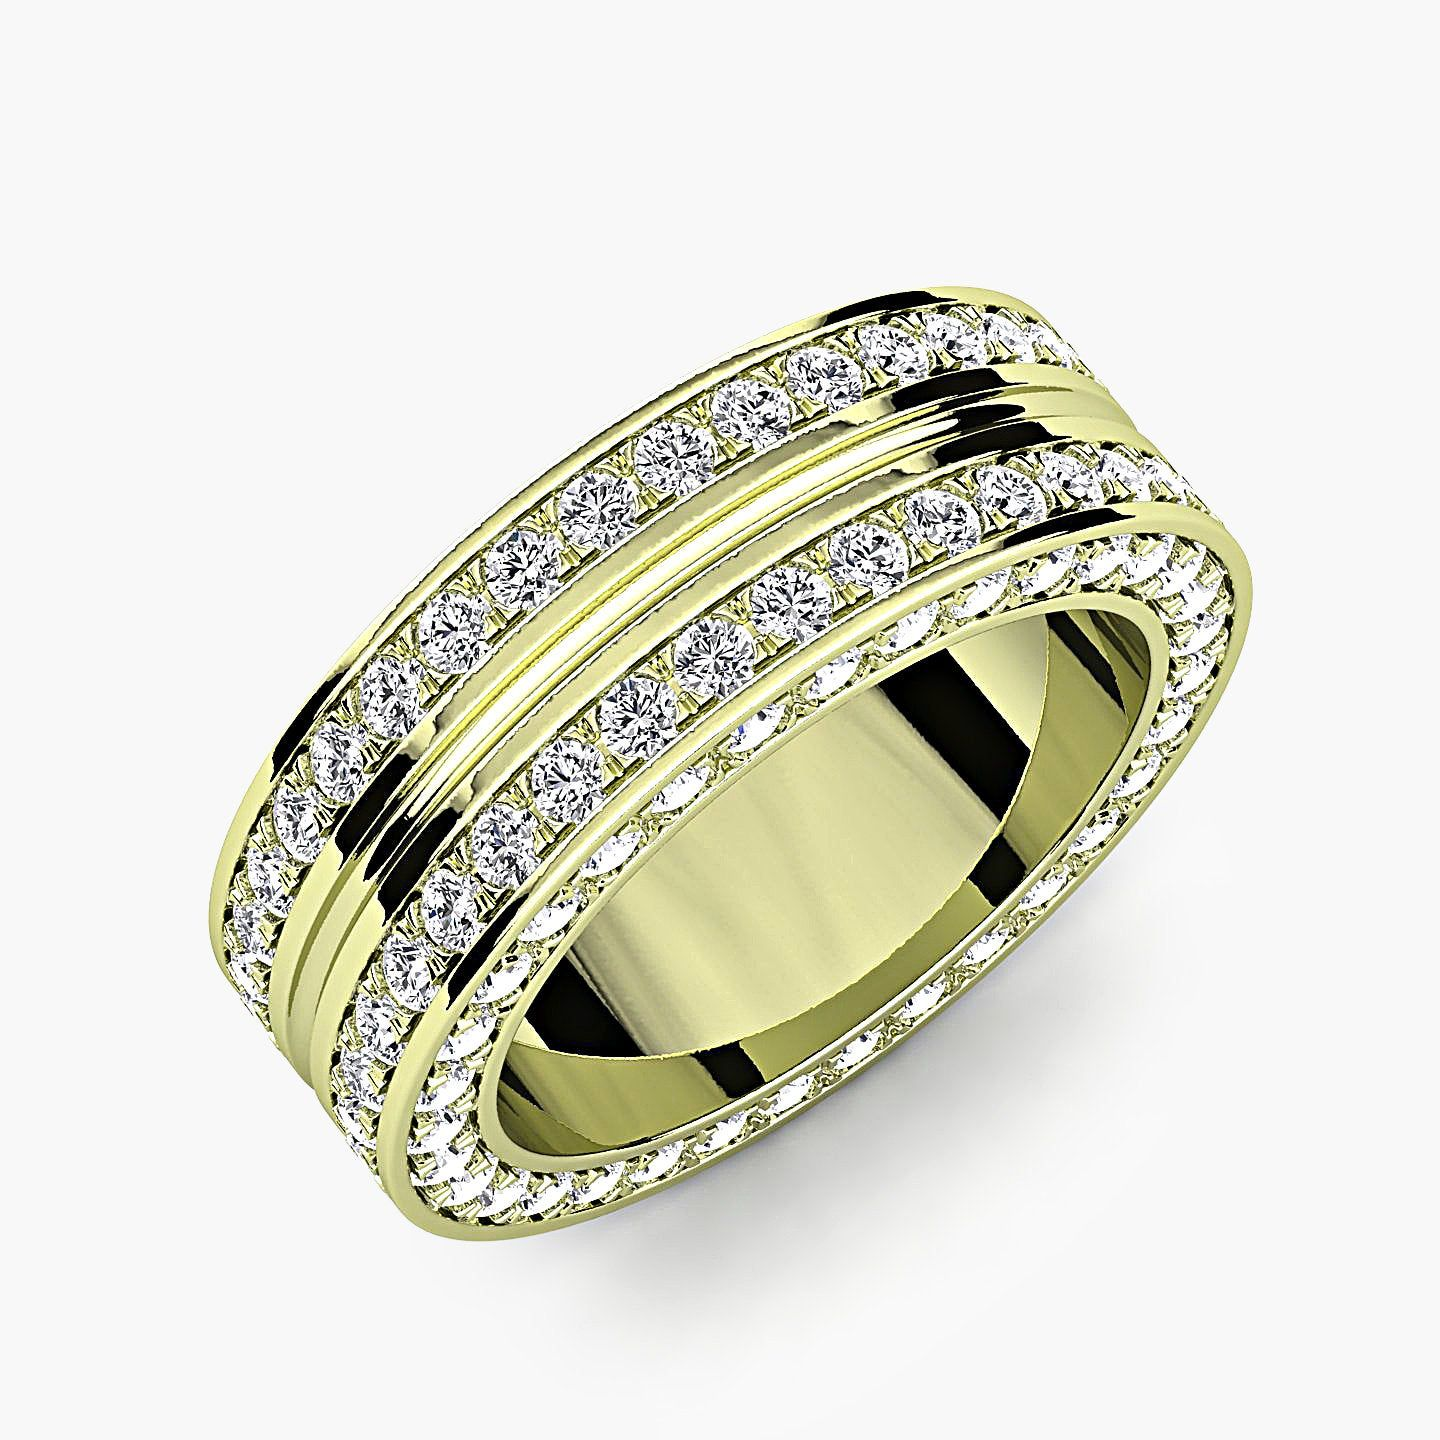 48+ Solid 18k gold mens wedding band info